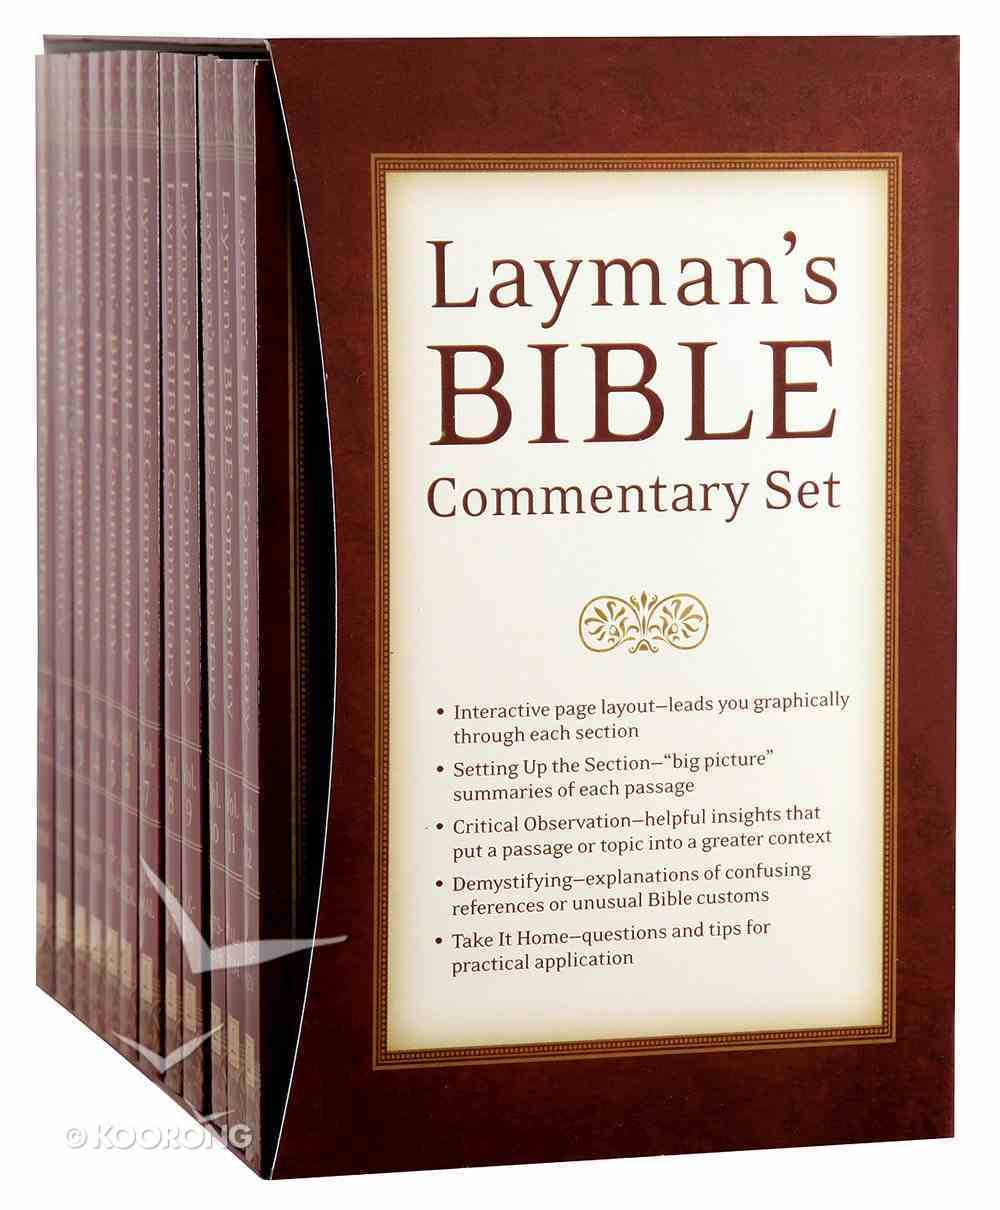 Layman's Bible Commentary (12 Vols) (Layman's Bible Commentary Series) Box